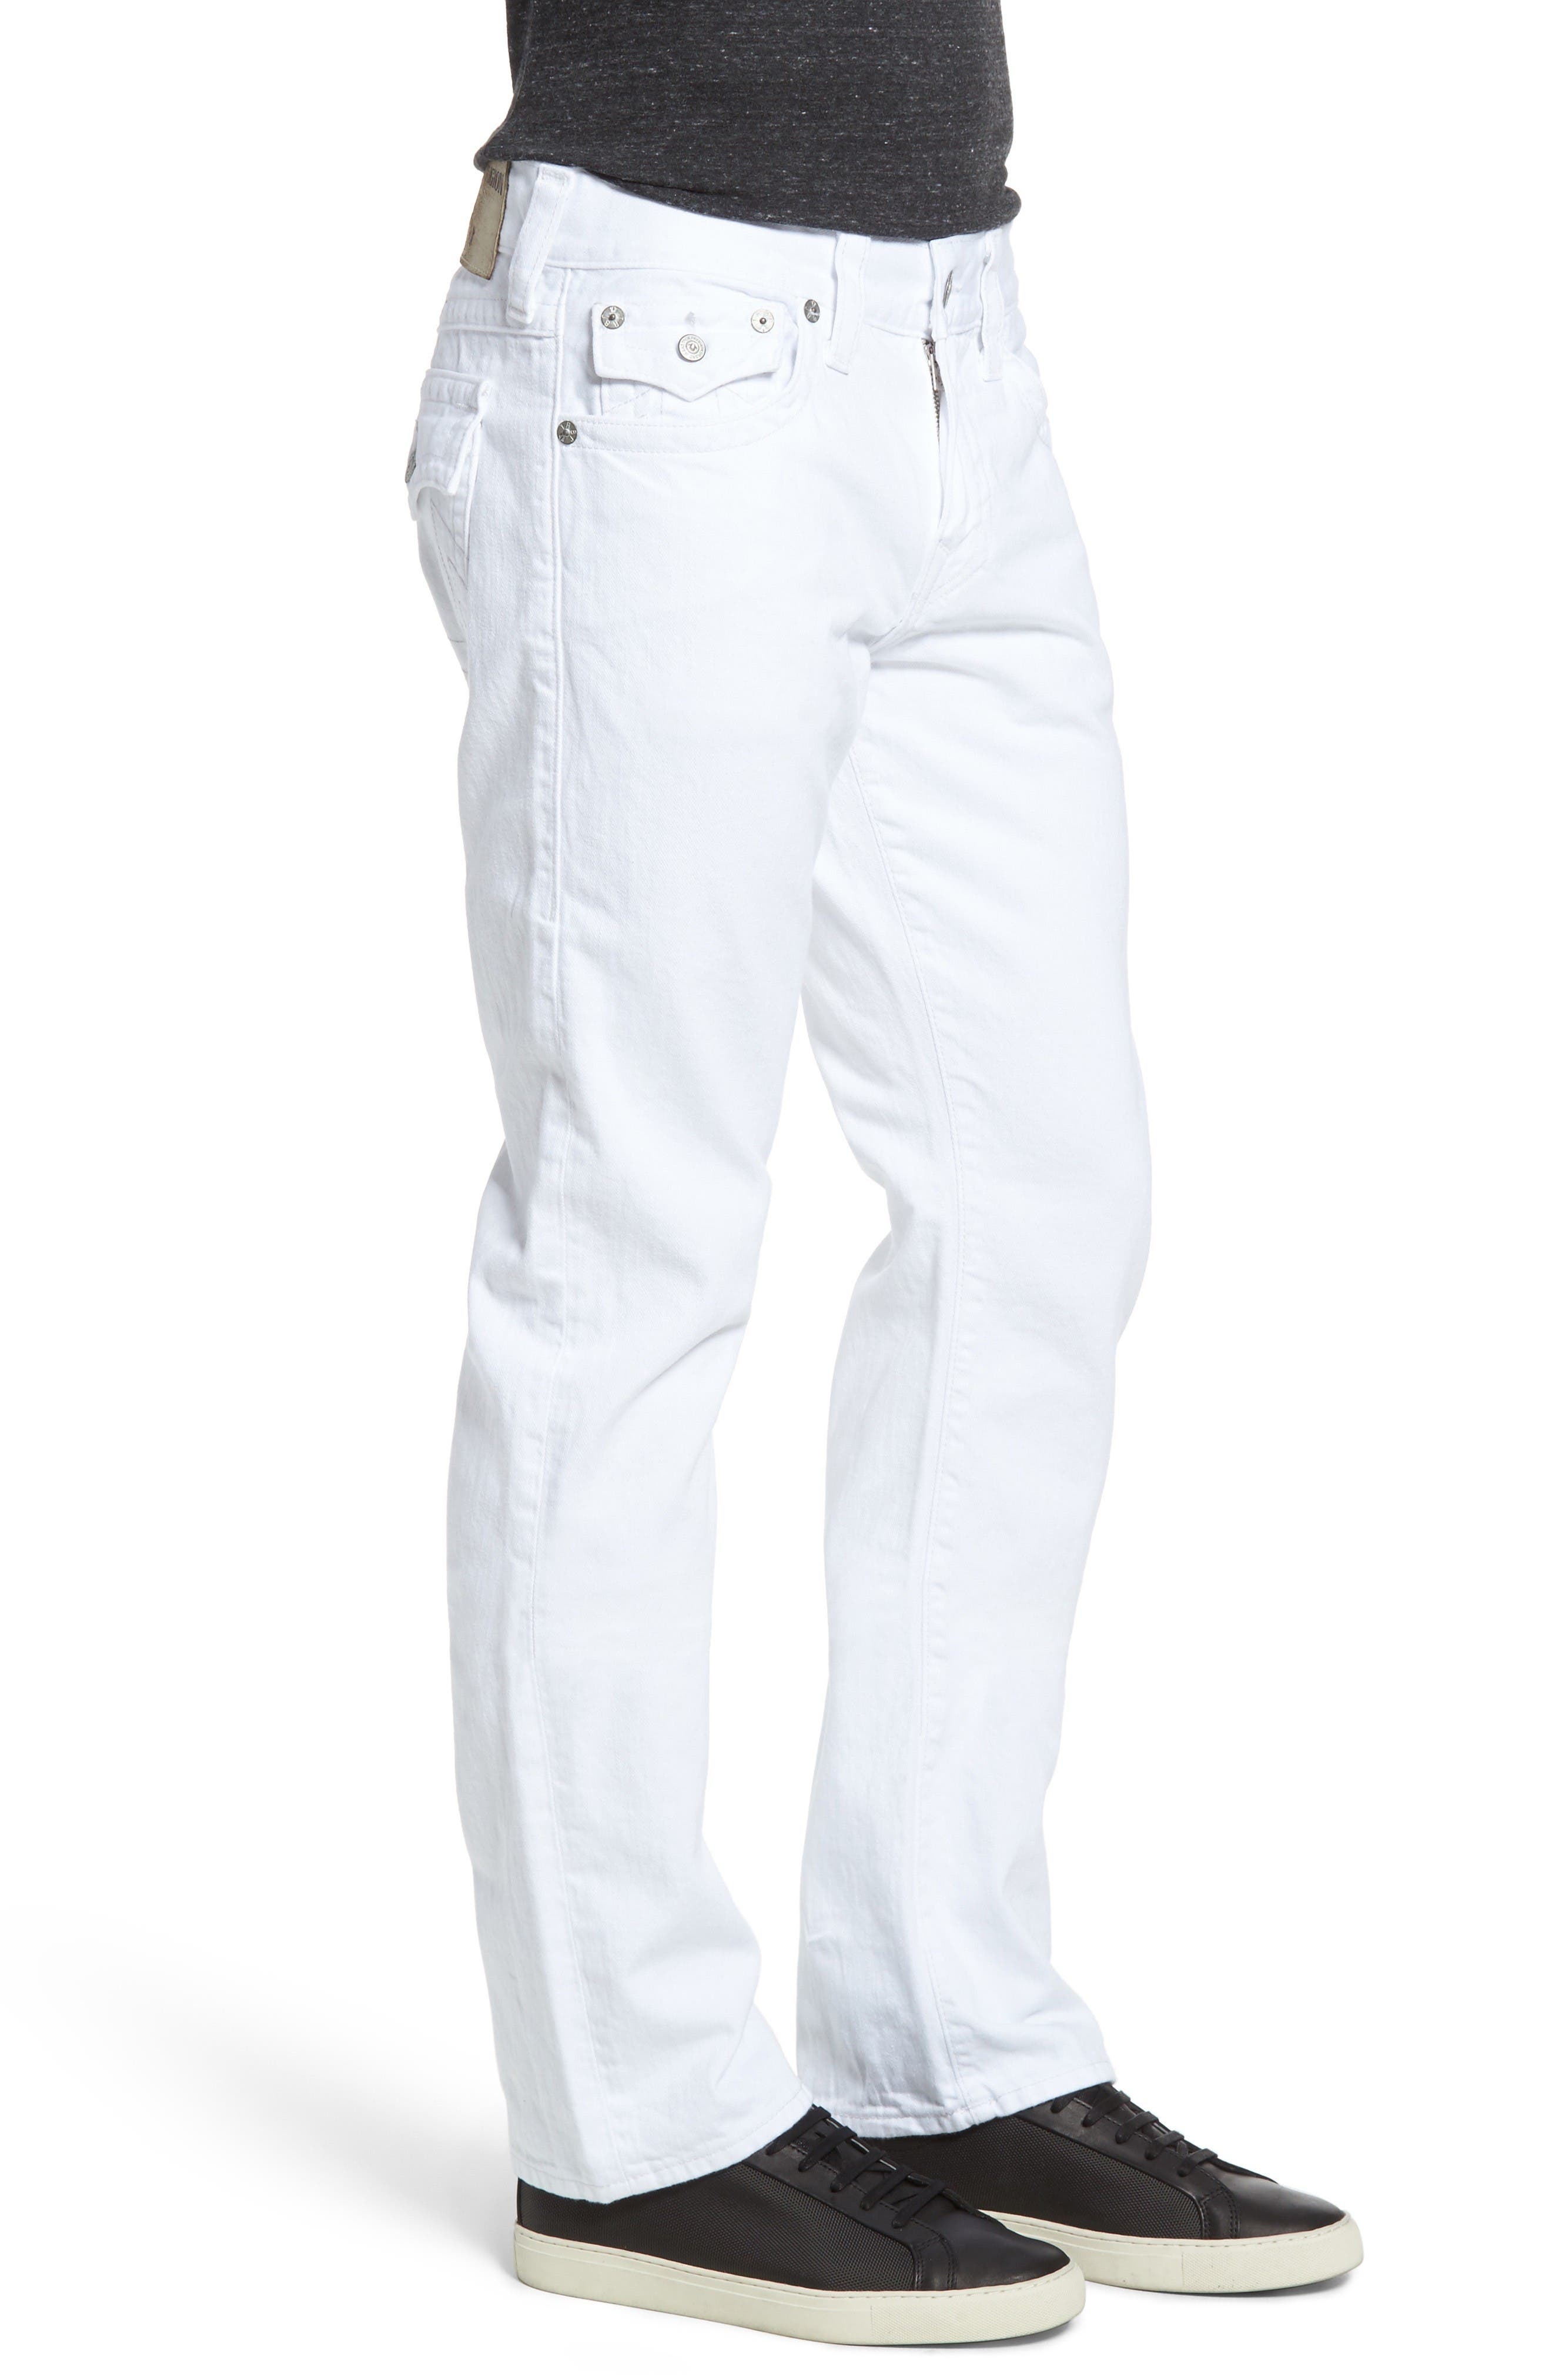 Ricky Relaxed Fit Jeans,                             Alternate thumbnail 3, color,                             Optic White